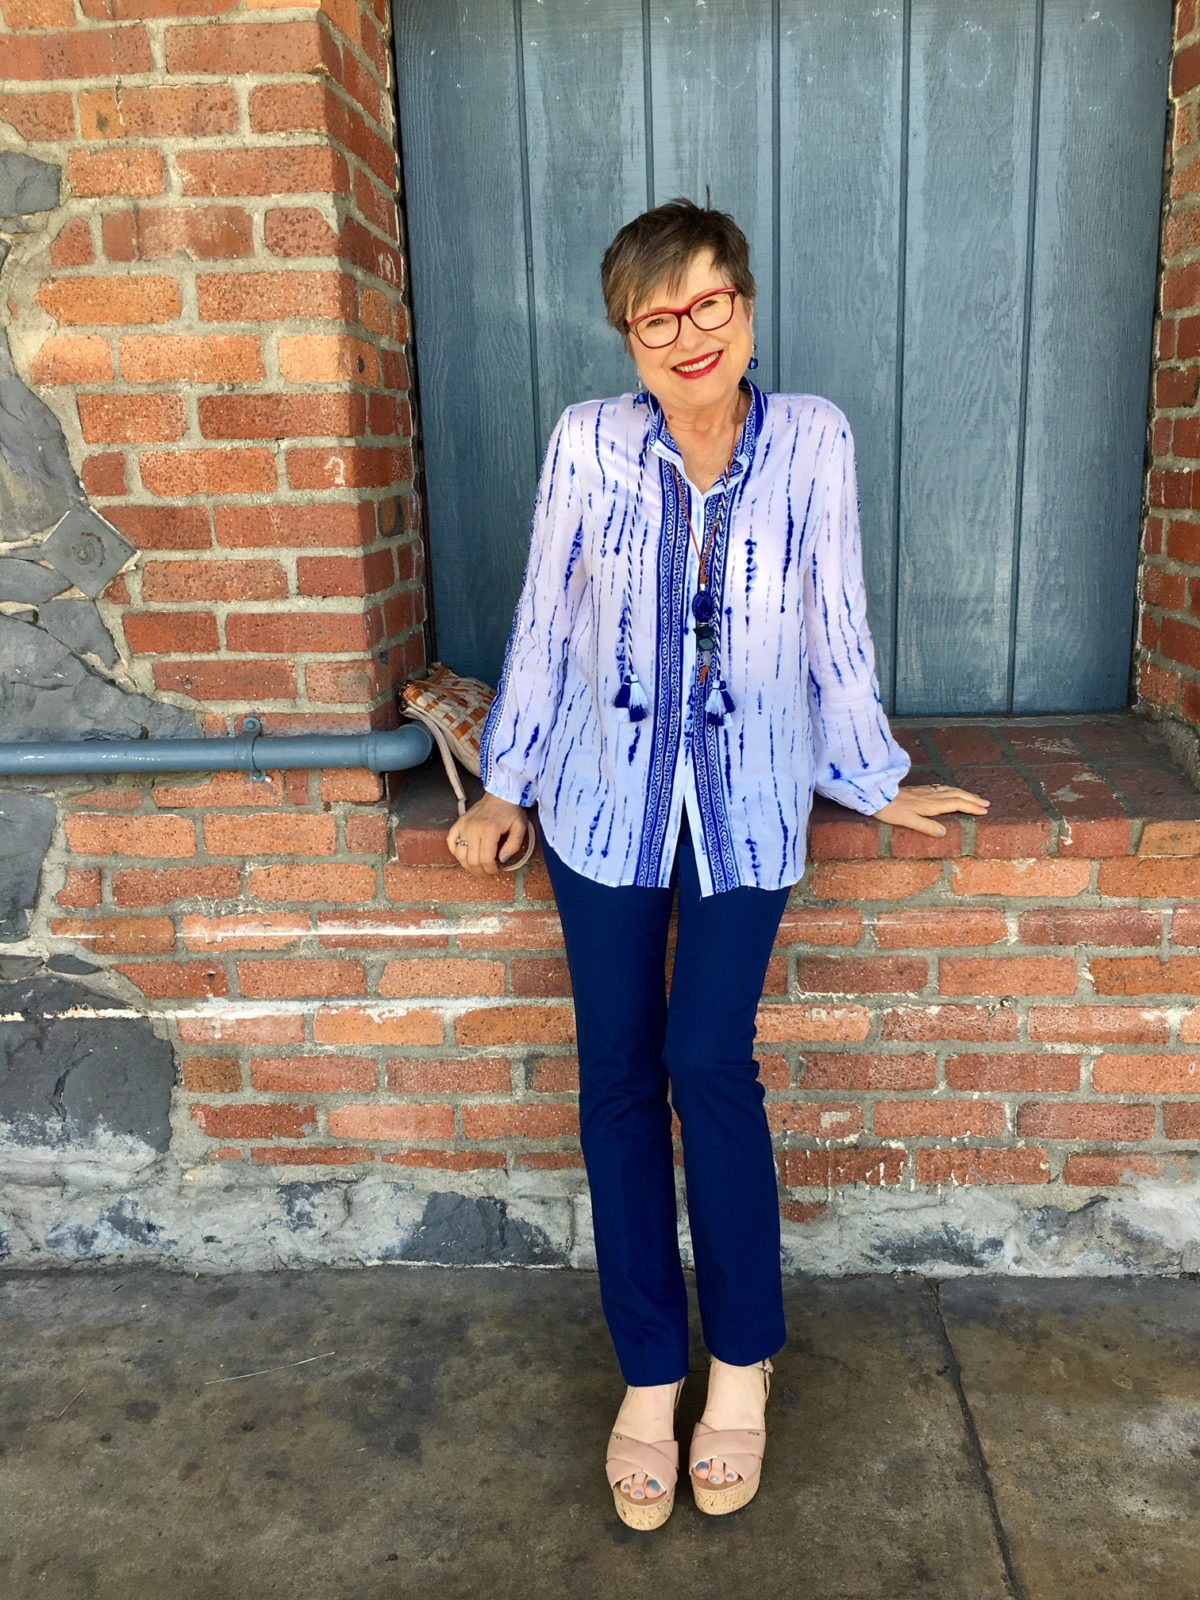 ae1601732c8c0 How a Chico s blue coordinated outfit blew my mind - Brenda Kinsel